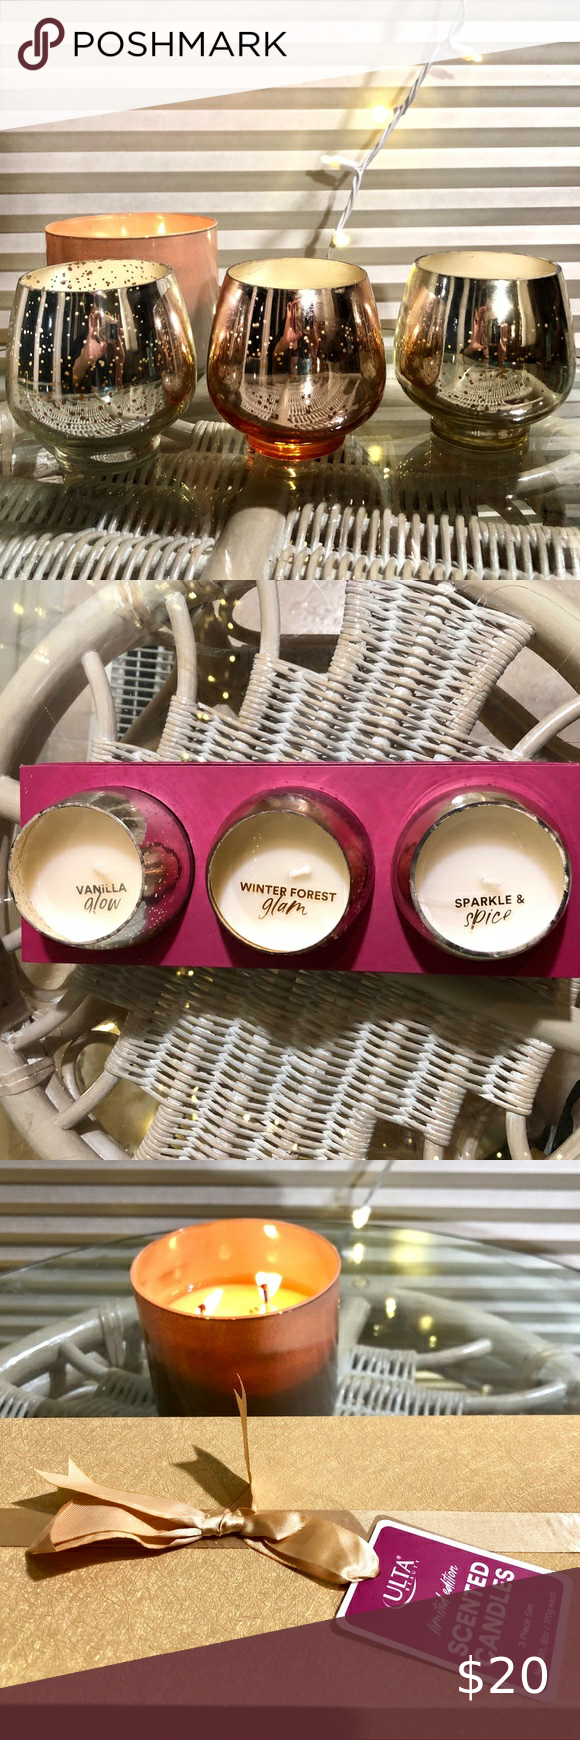 ULTA ️ 3 Piece Candle Set in 2020 Candle set, Candles